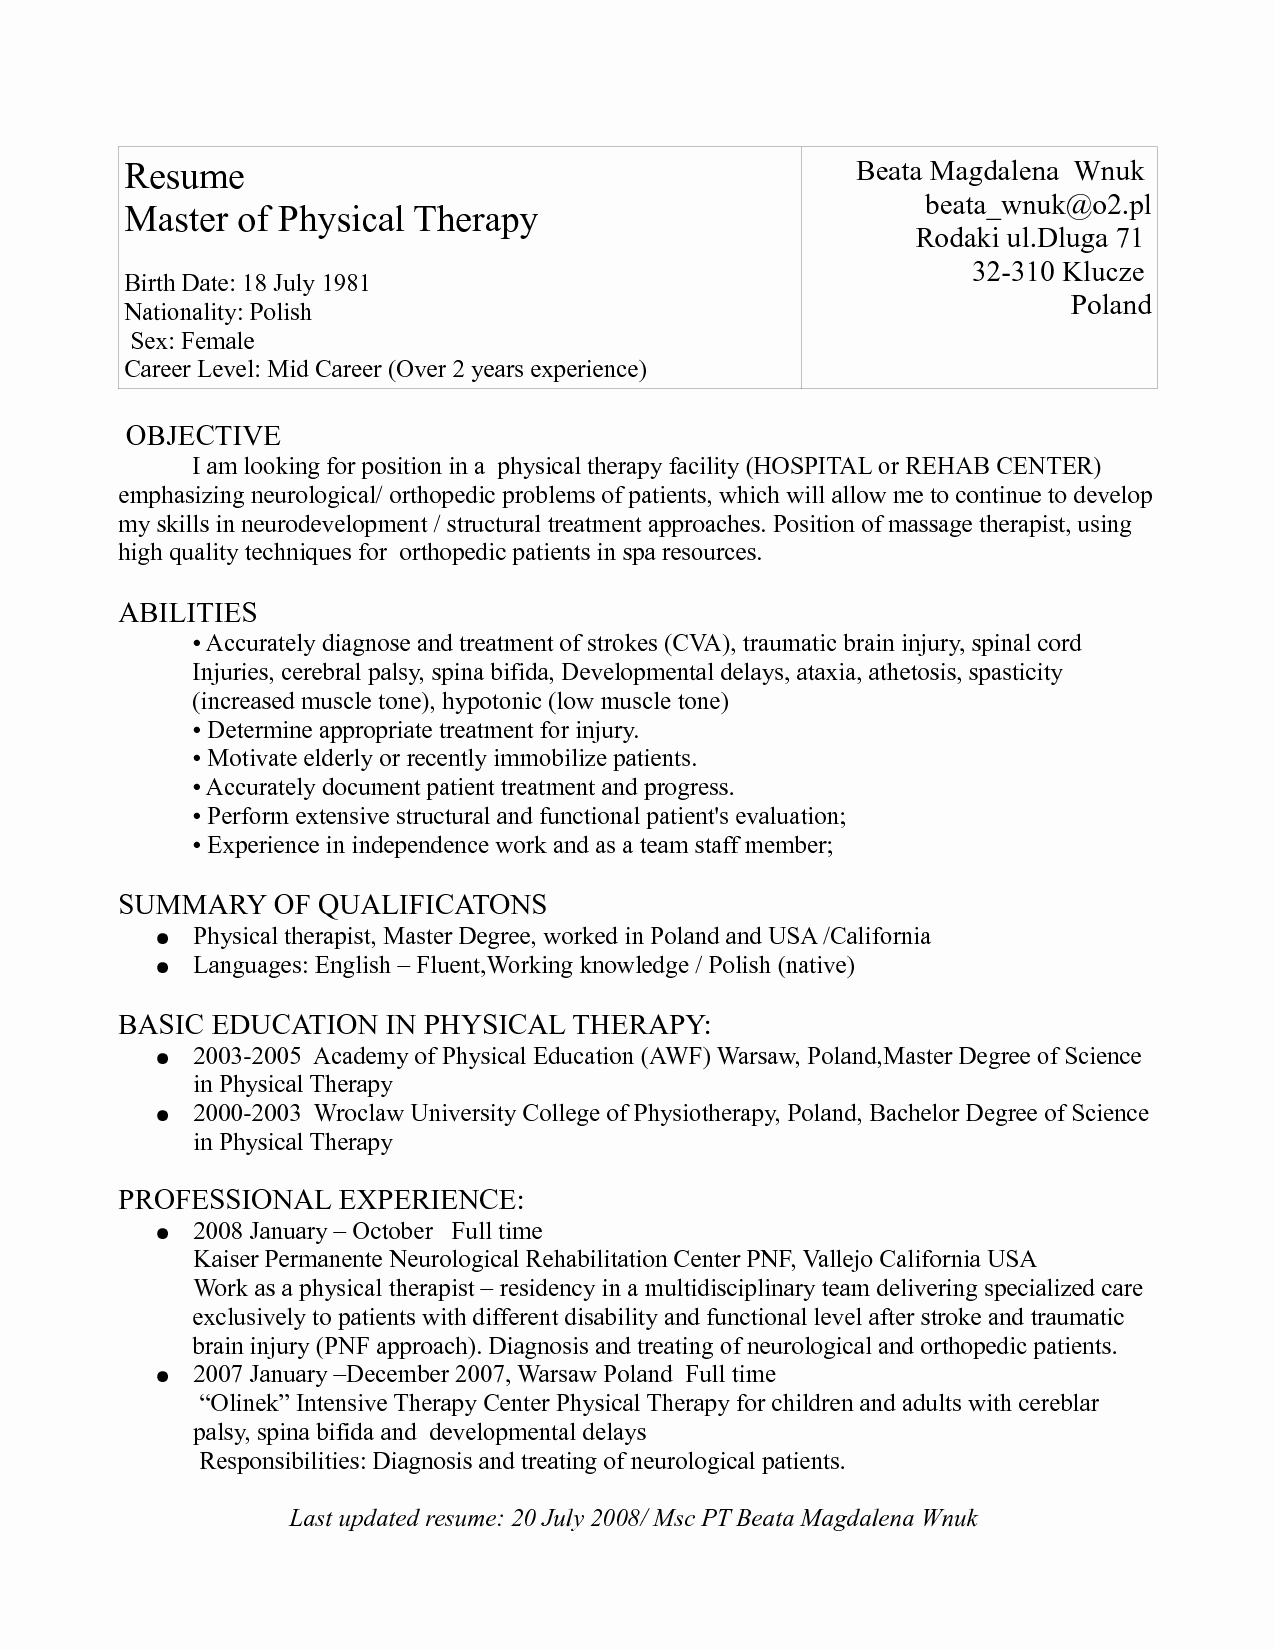 Physical therapy Cover Letter Template - 42 Unique Physical therapy Cover Letter